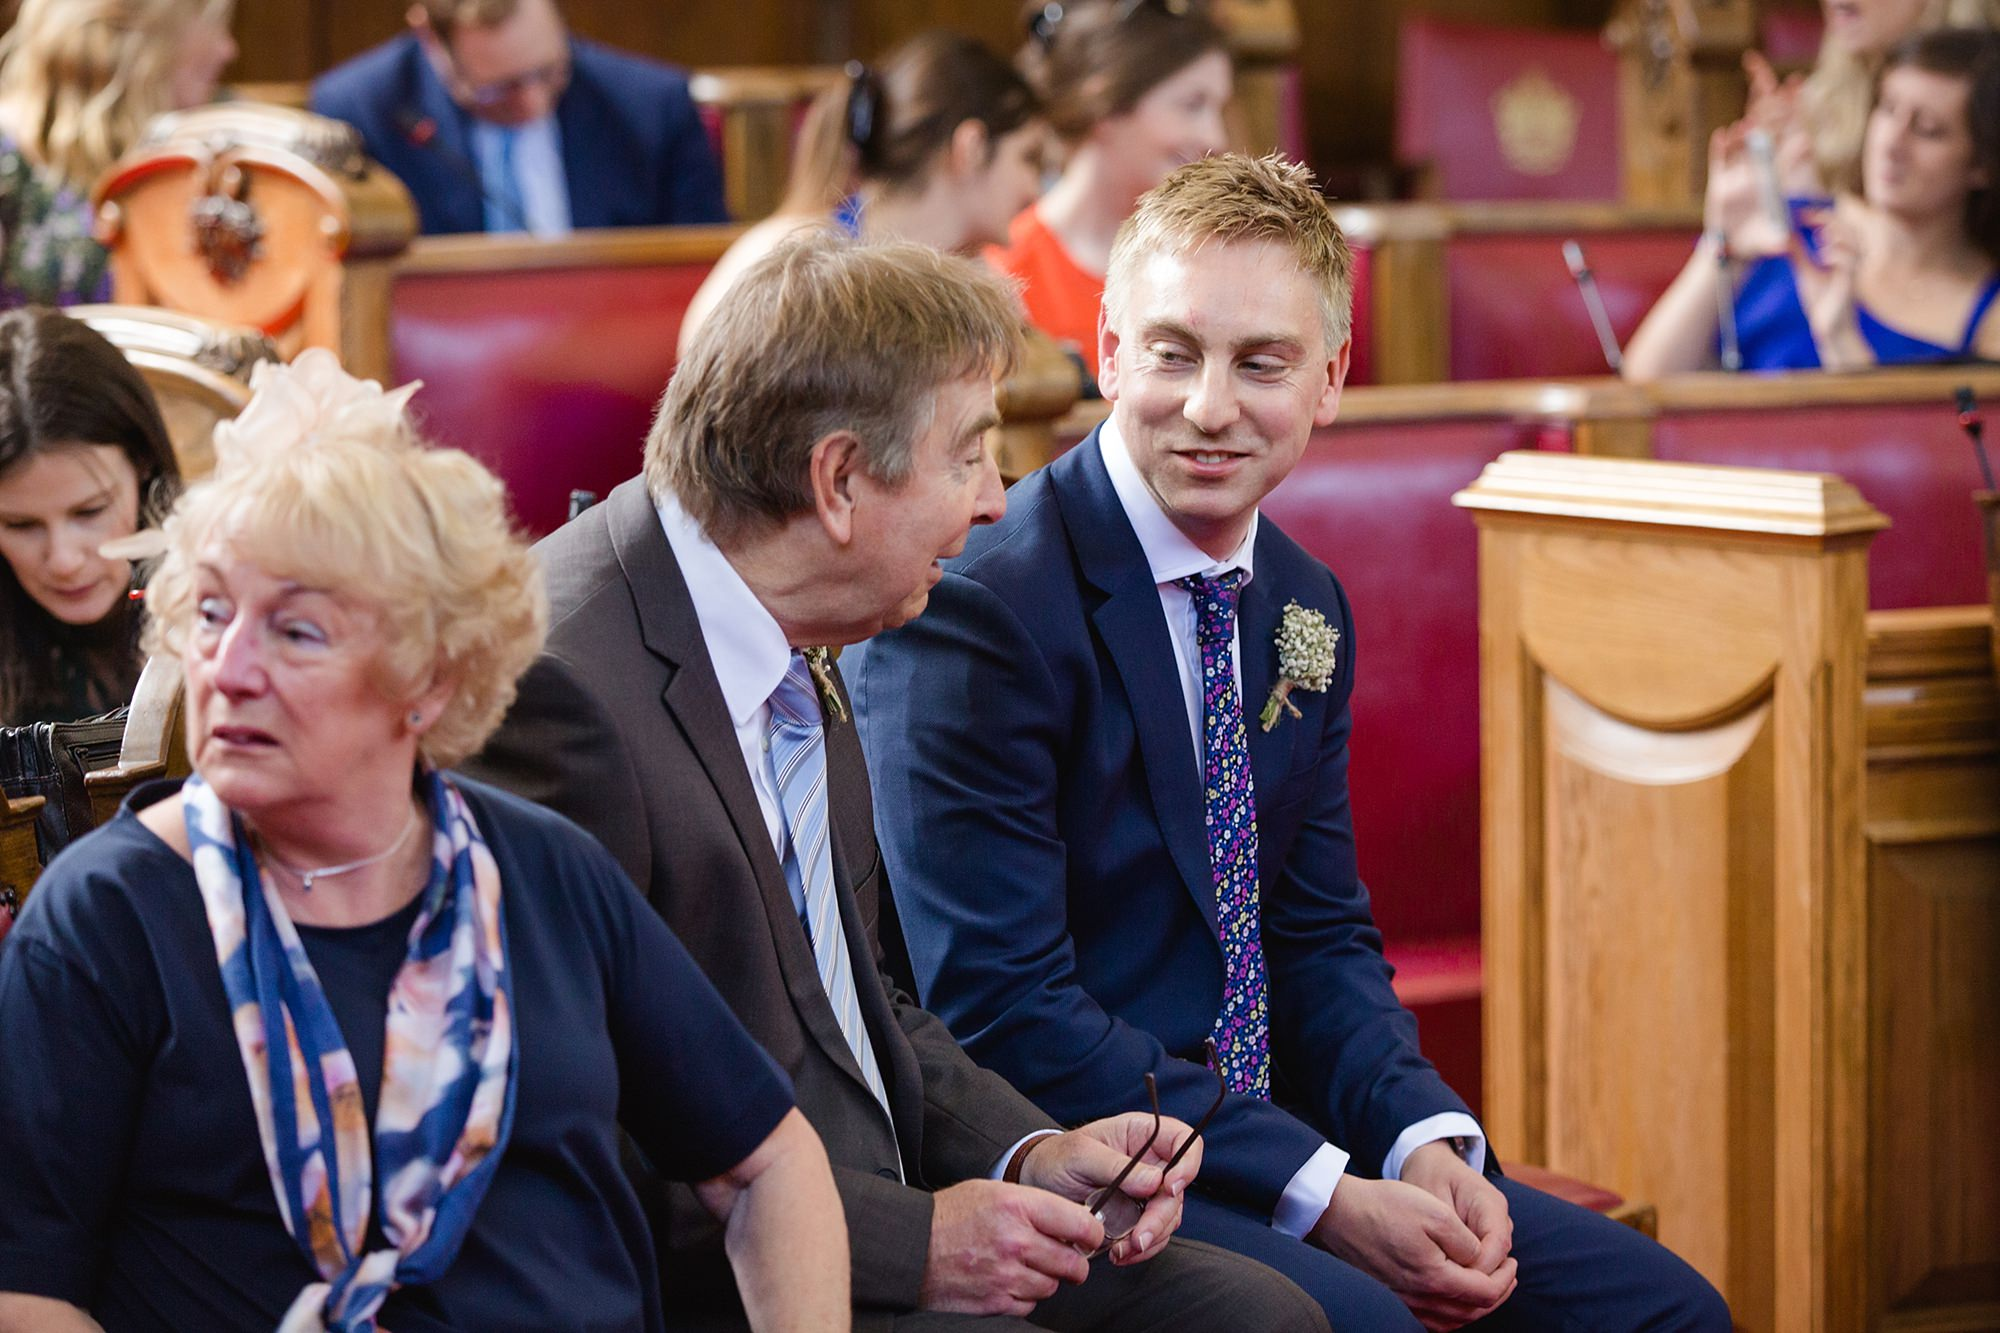 oyster shed wedding portrait of groom and his family waiting at islington town hall